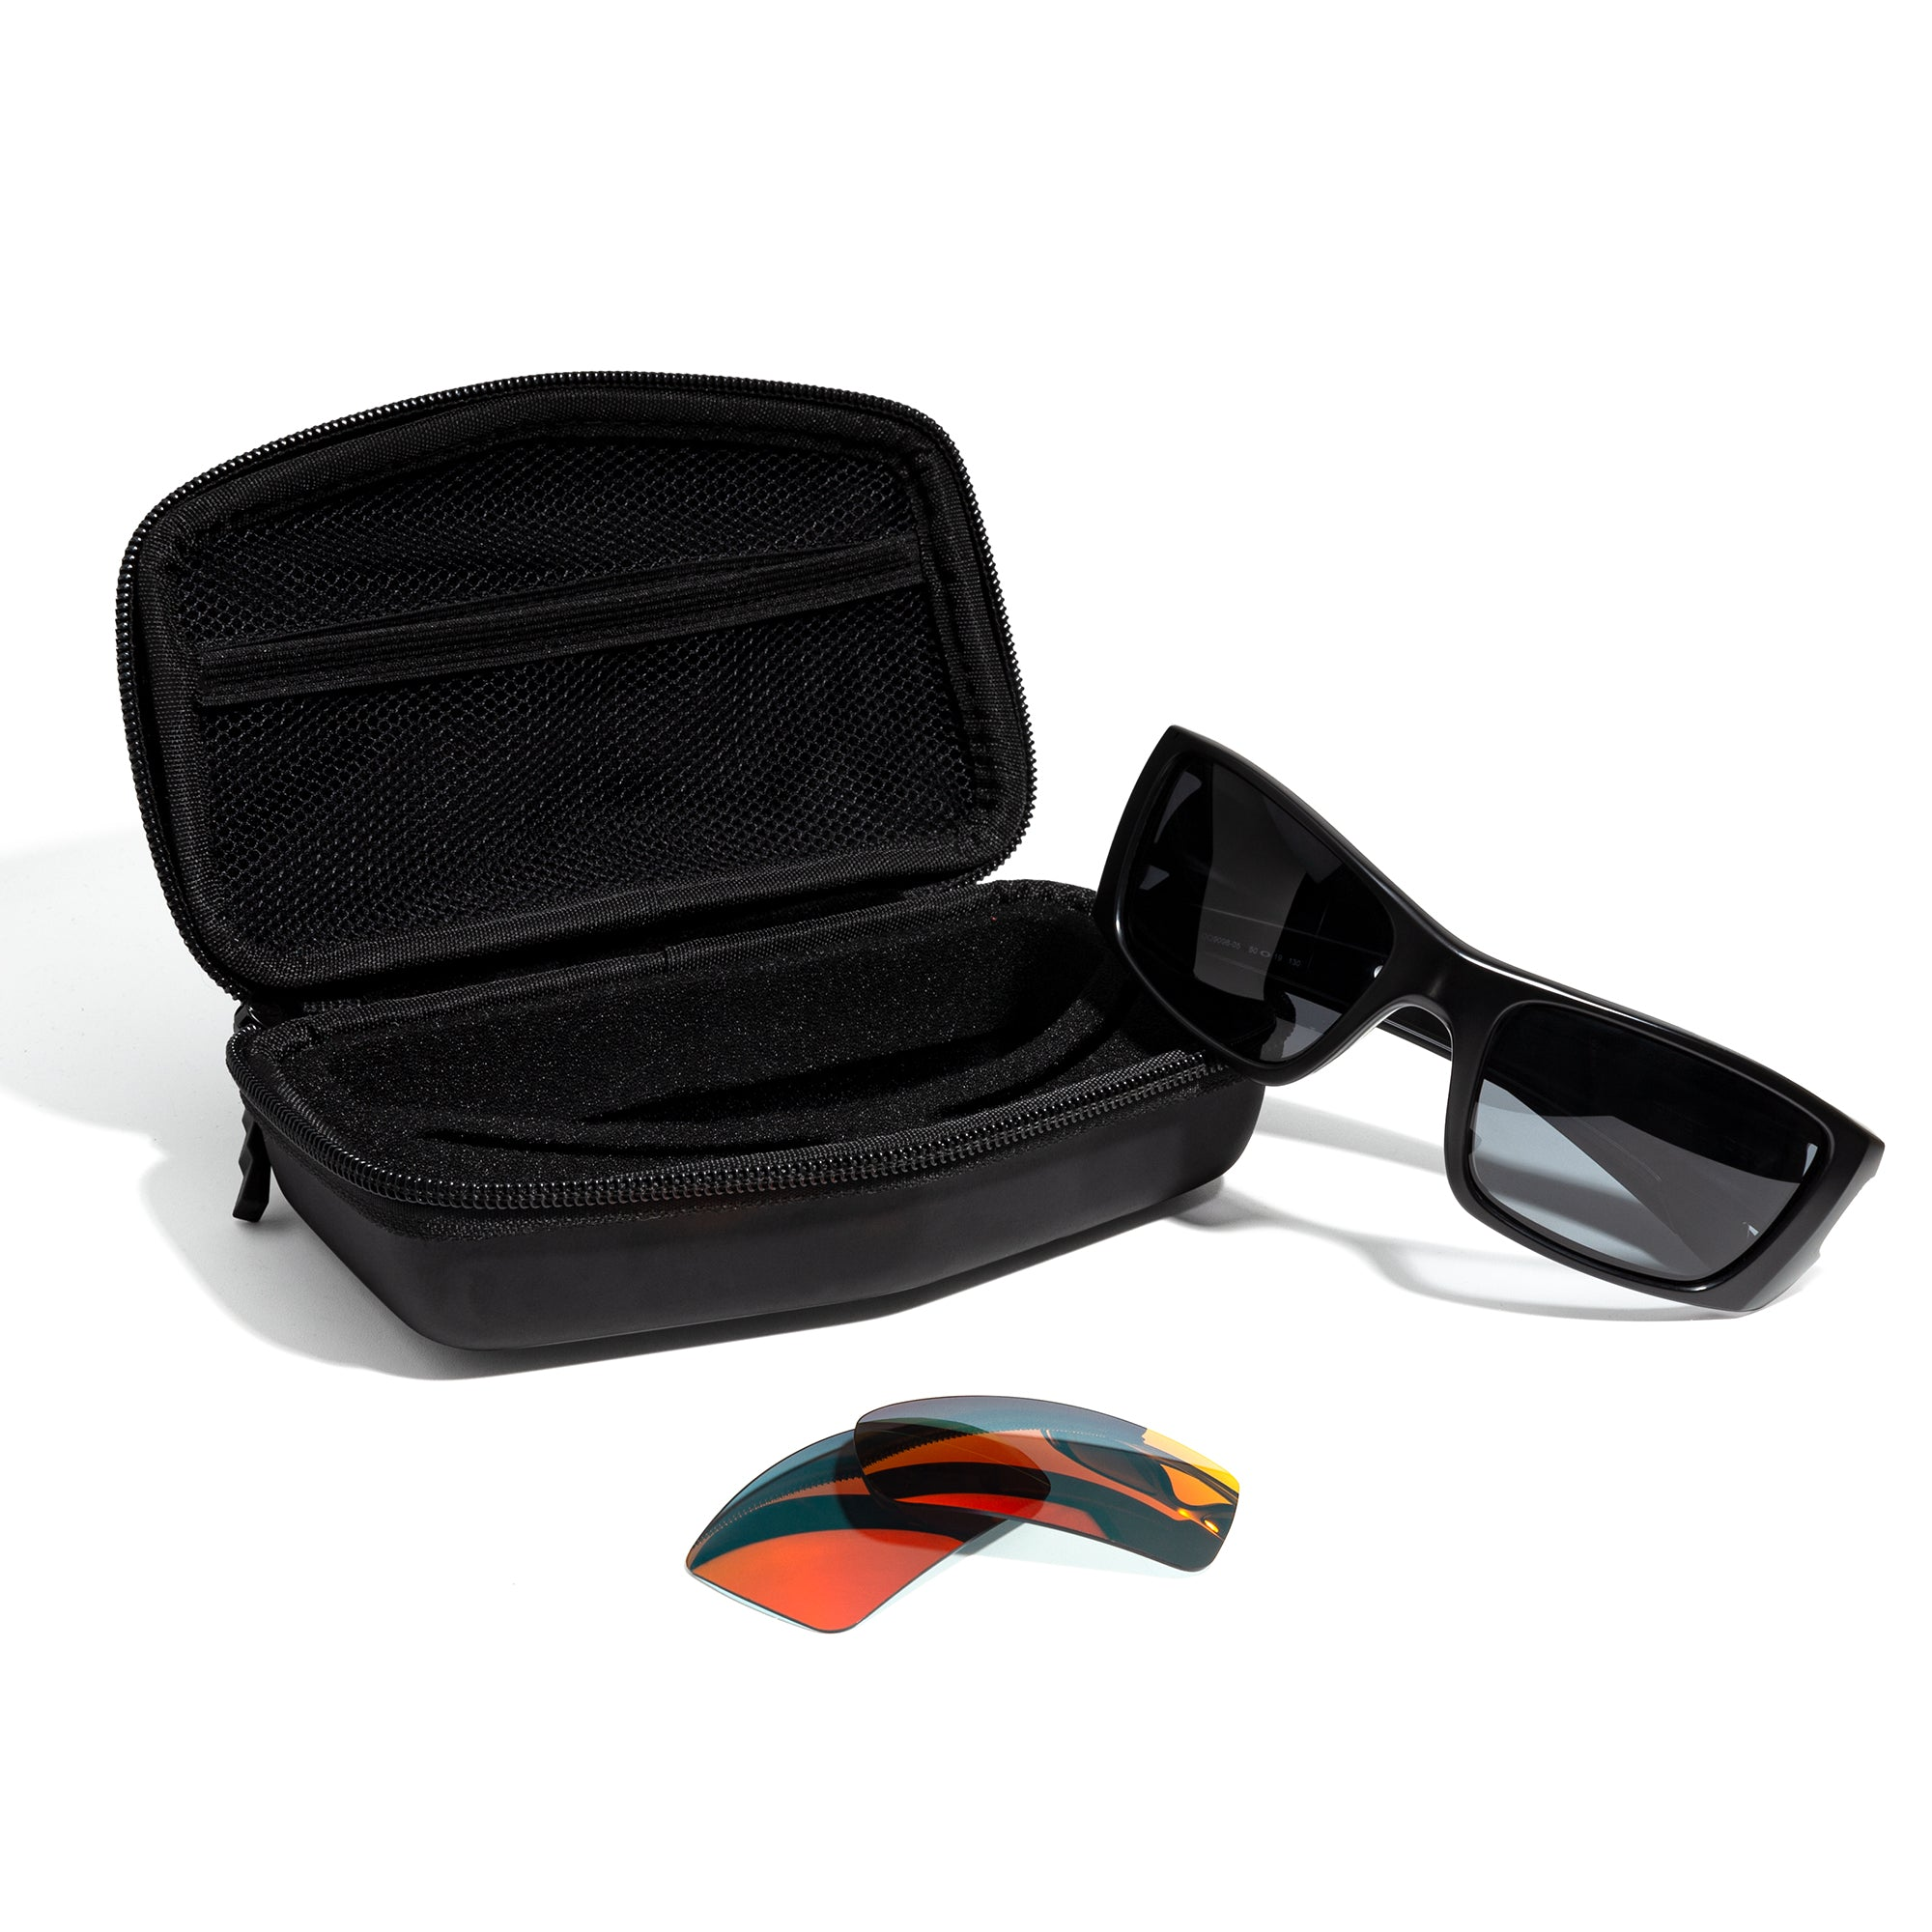 revant large sport sunglass case open with sunglasses and a pair of lenses around it